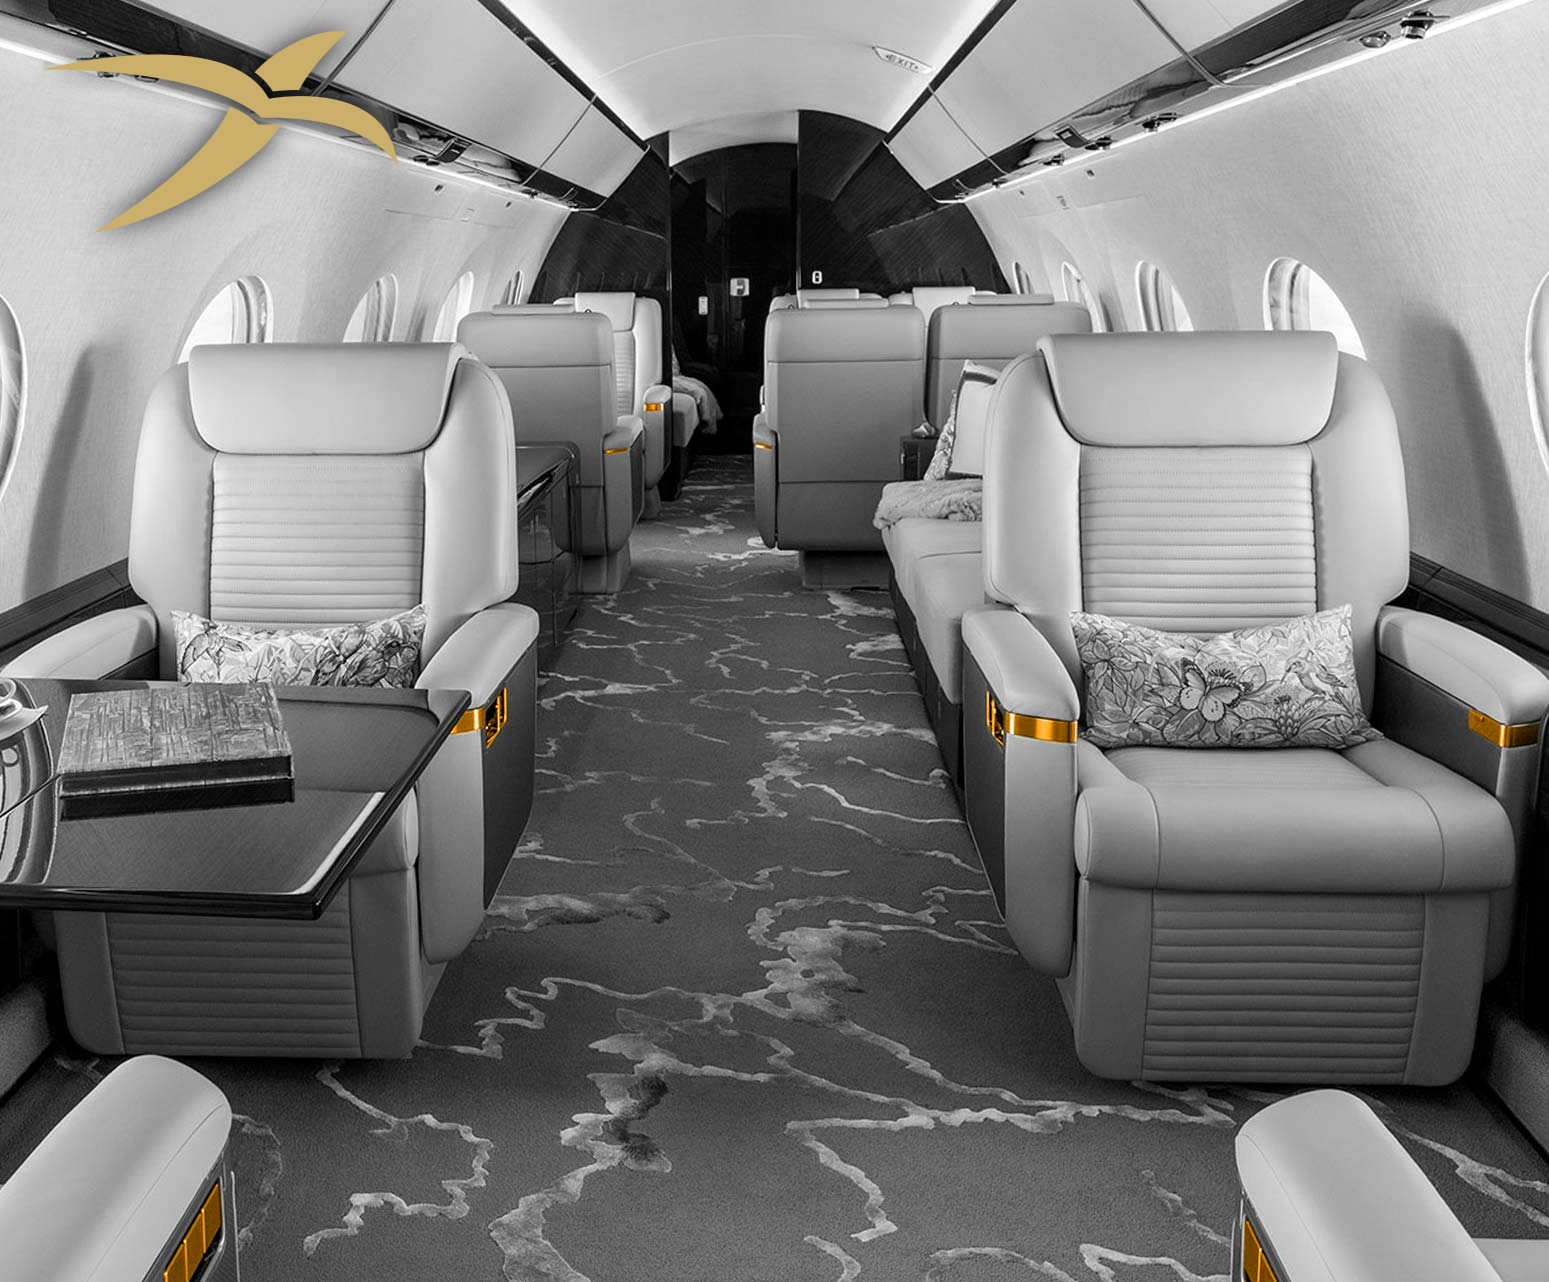 , New to Private Aviation? What you should know before your first flight, Saubio Making Wealth